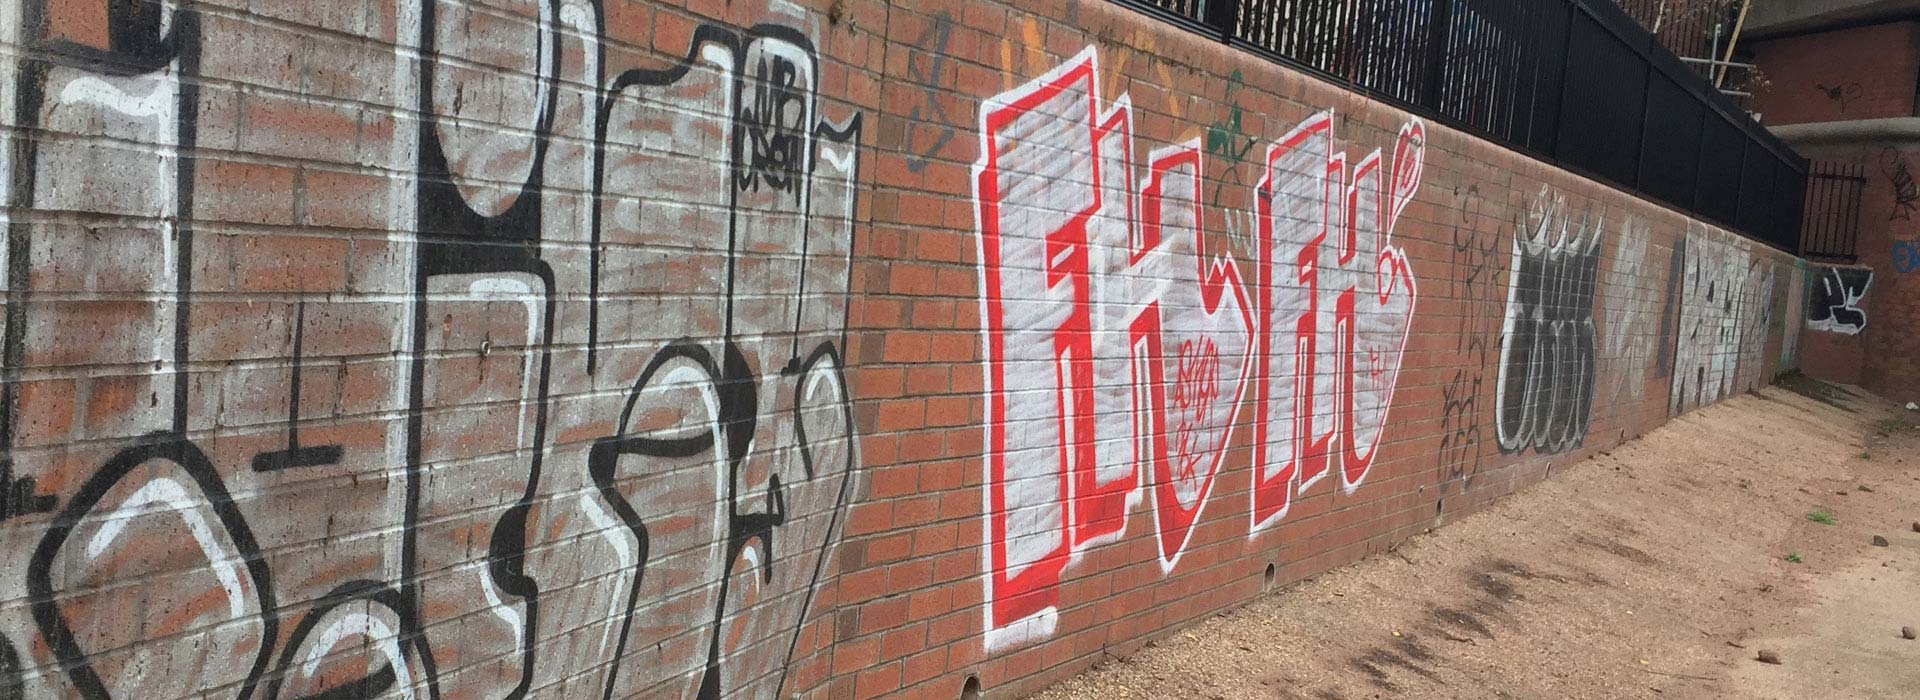 Graffiti Removal Services in Manchester and the Northwest - HCS Cleaning Services